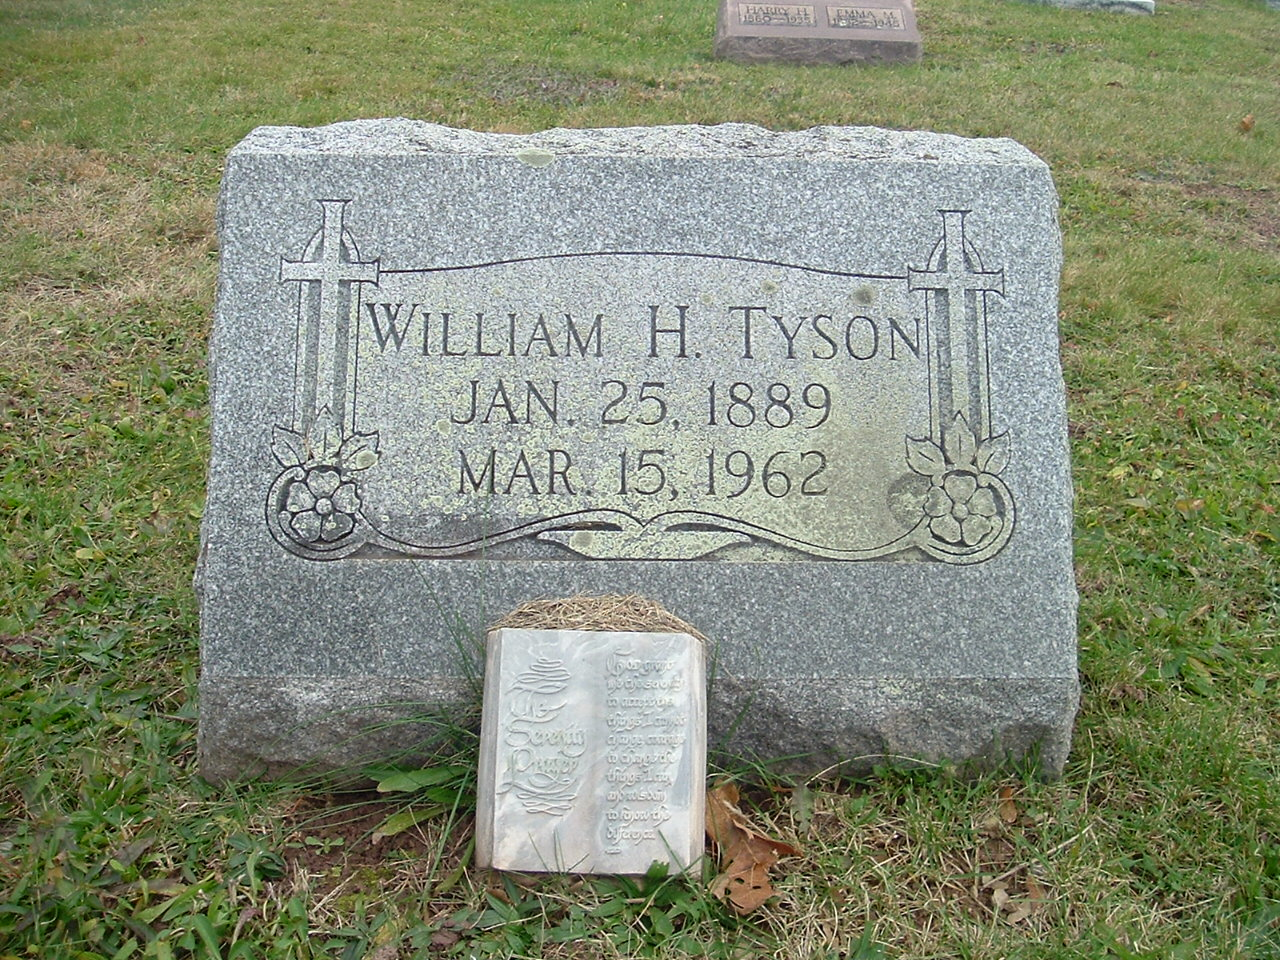 William Henry Tyson